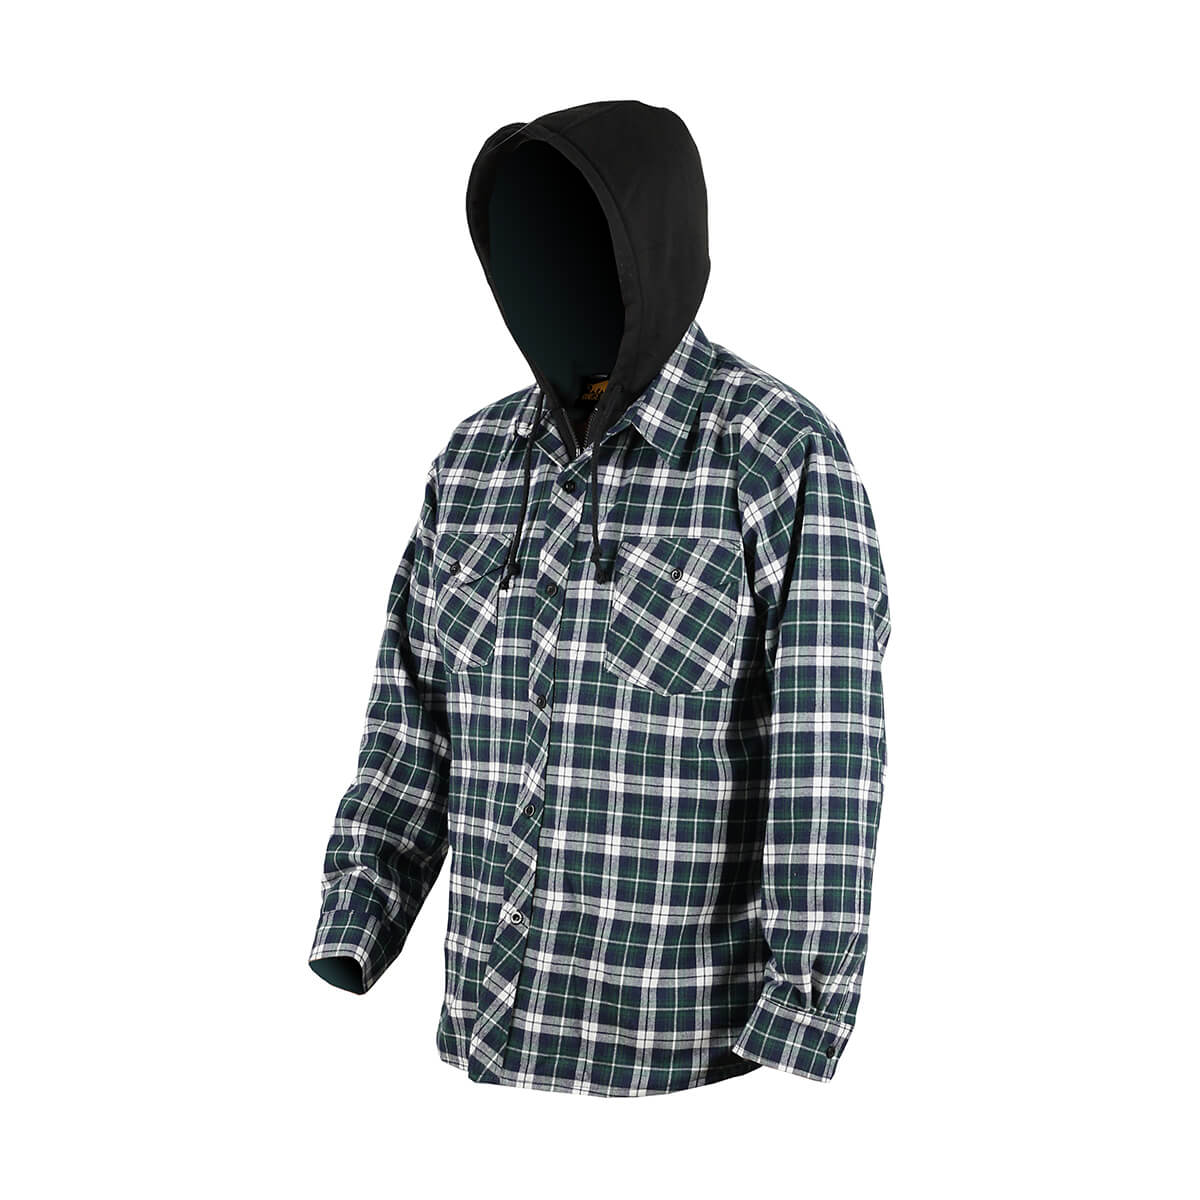 Men's Hooded Quilted Flannel - Assorted